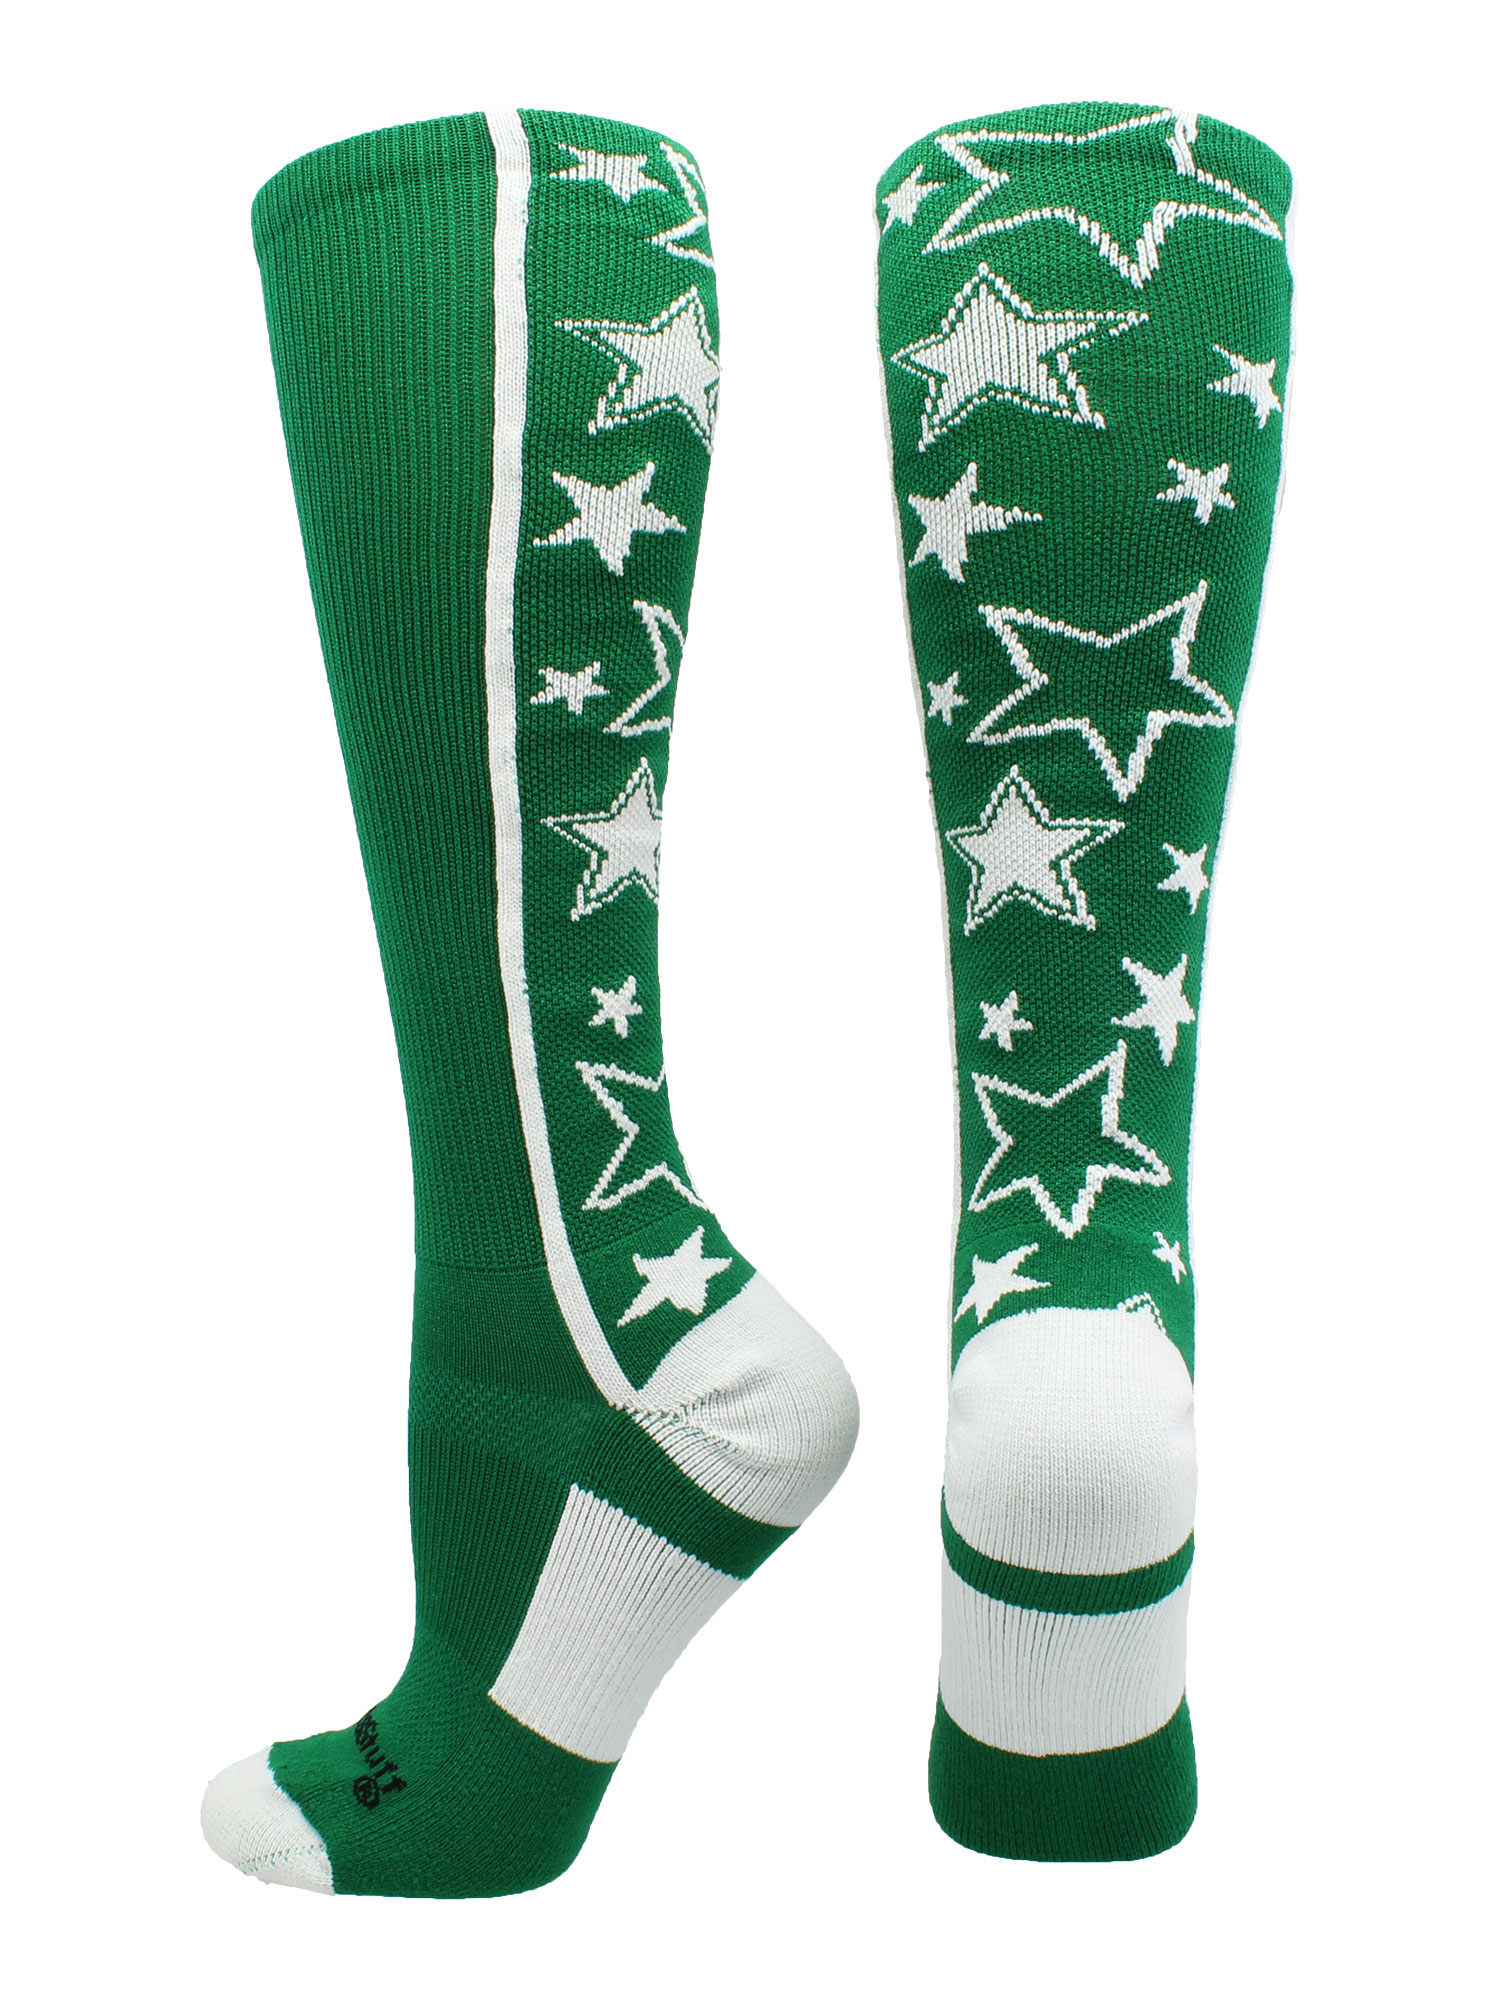 Crazy Socks with Stars Over the Calf Socks (Royal/White, Large) - Royal/White,Large